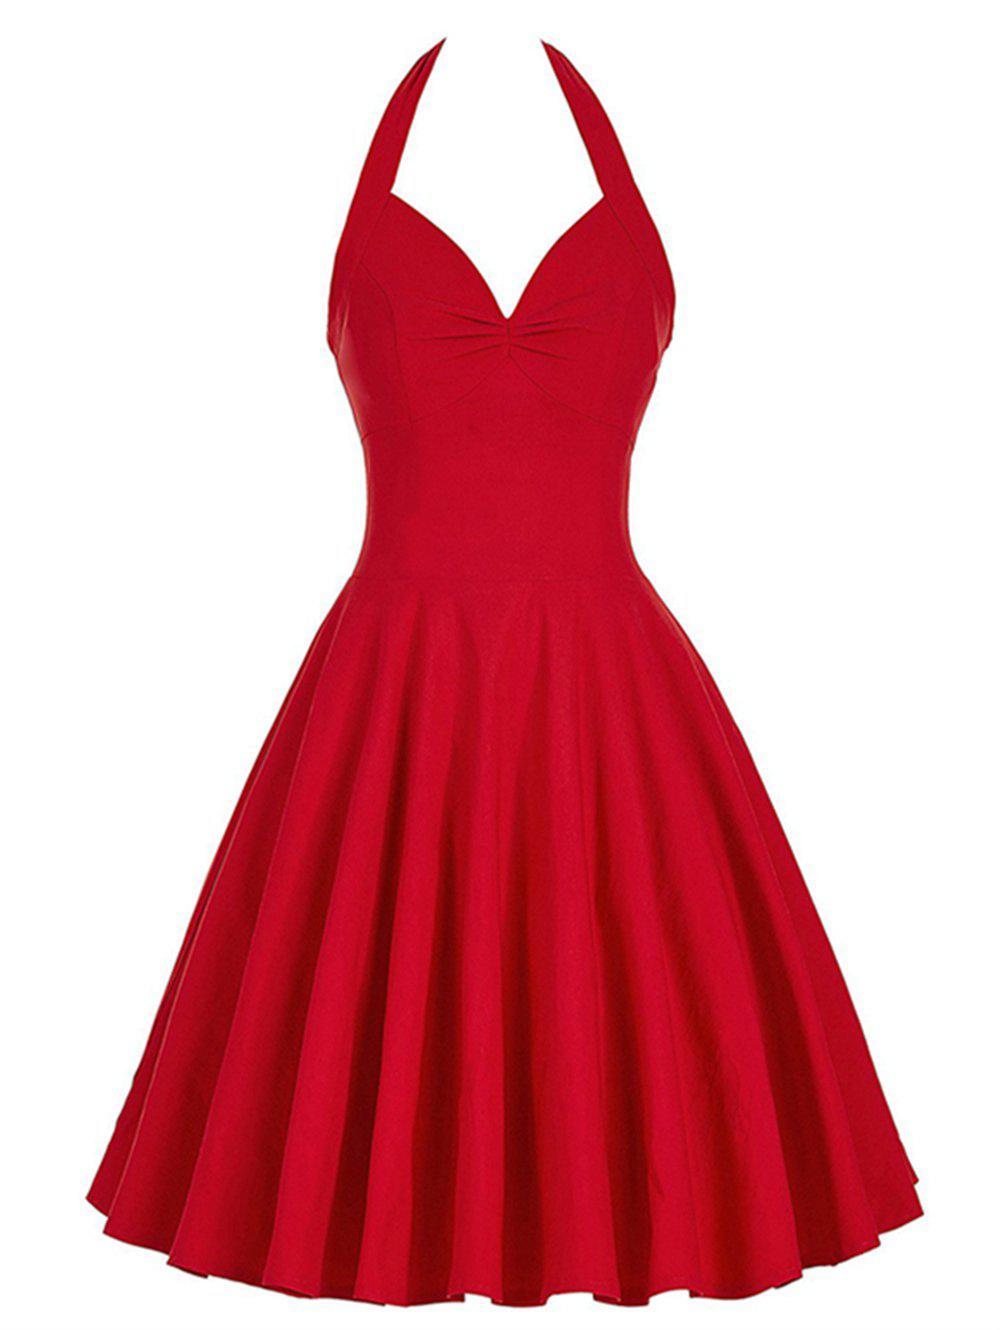 2018 Lace Up Halter Vintage Swing Corset Club Dress In Red